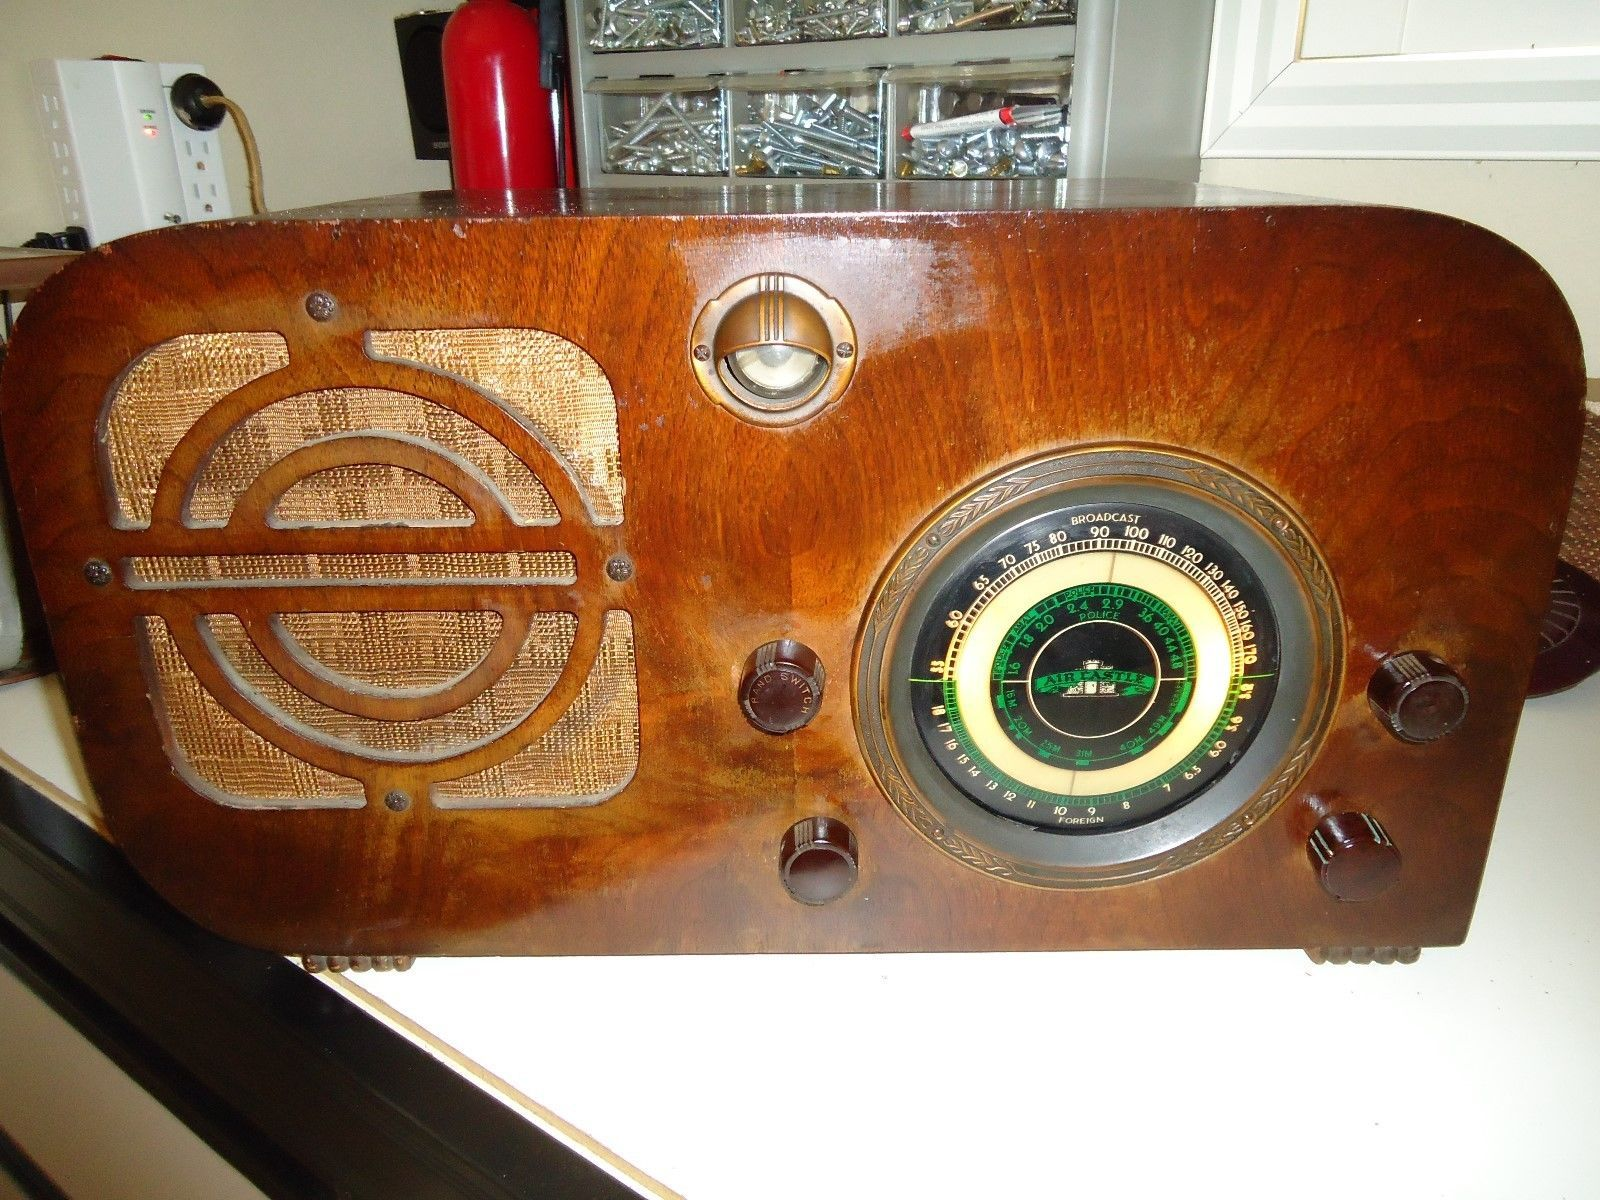 Aircastle Model A-31 Wooden Working Antique Radio | Vintage radios ...